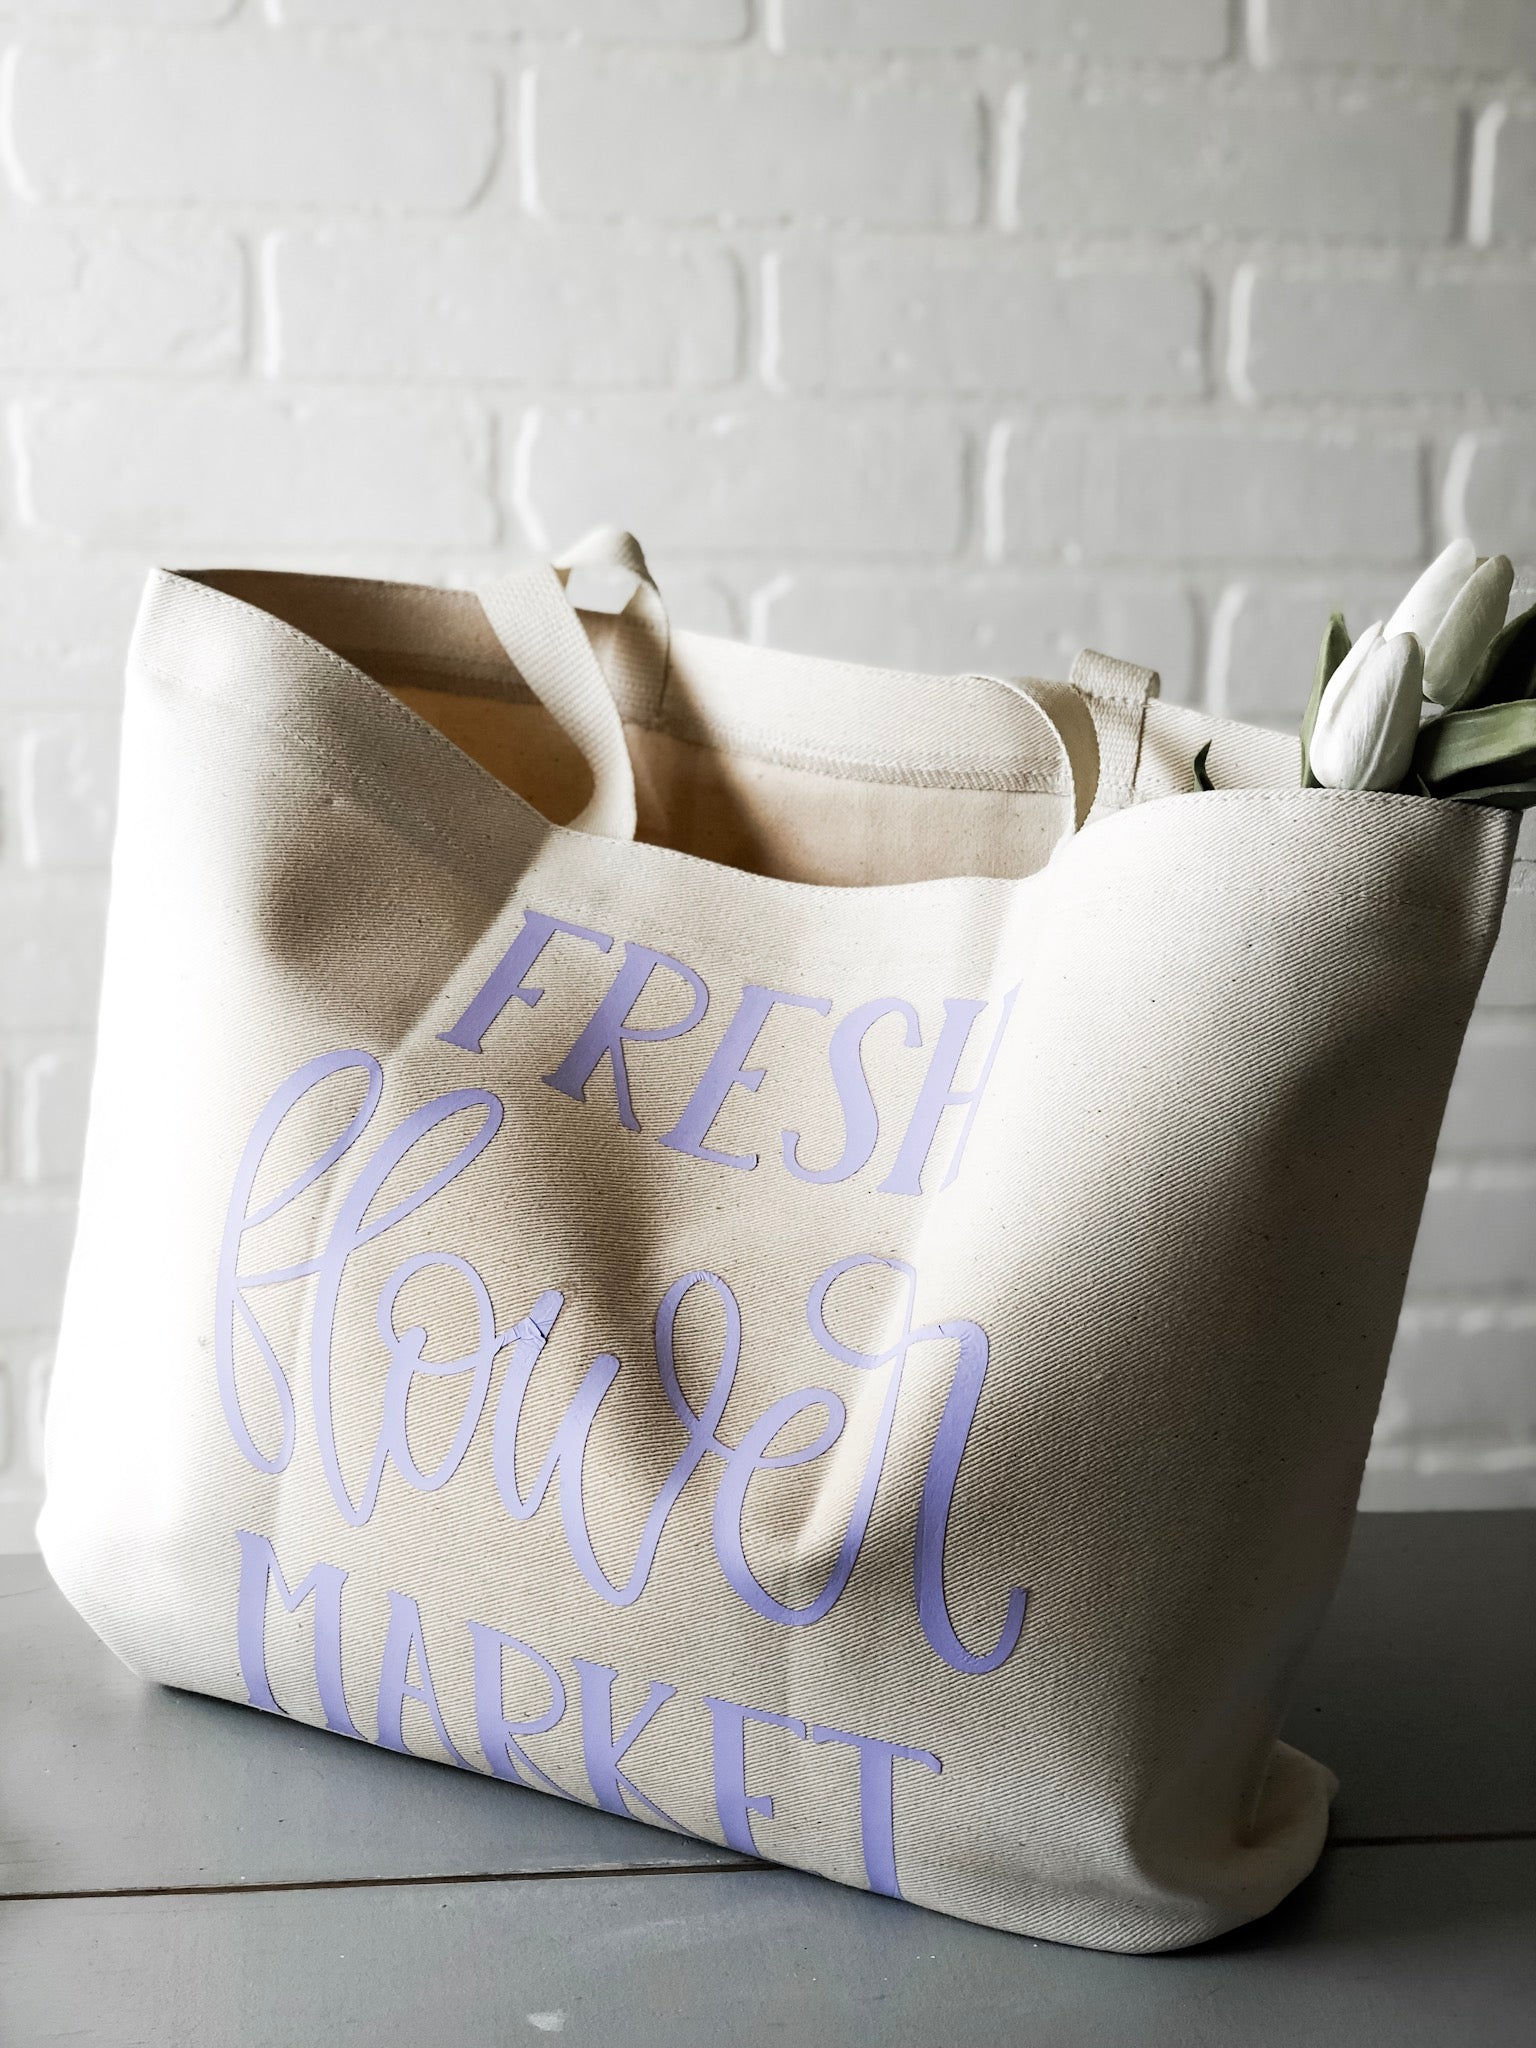 Fresh Flower Market Bag